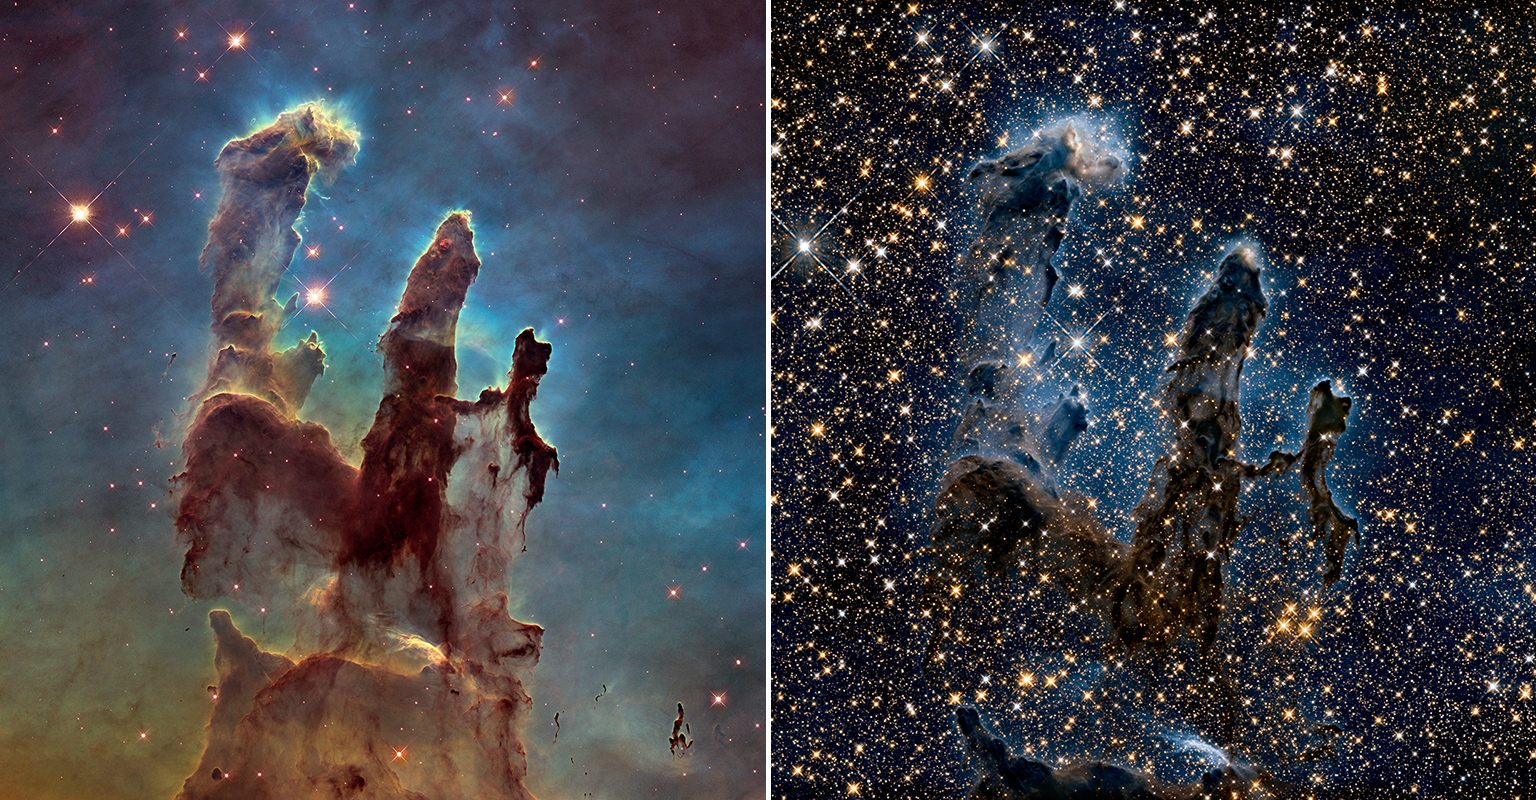 "At left, Hubble revisited its iconic ""Pillars of Creation"" image with this sharper and wider view of pillars in the Eagle Nebula. The towering pillars are about 5 light-years tall, bathed in the blistering ultraviolet light from a group of young, massive stars located off the top of the image. Stars are being born deep inside the pillars, which are made of cold hydrogen gas laced with dust. At right, a near-infrared view of the pillars. Photo by NASA, ESA and the Hubble Heritage Team"